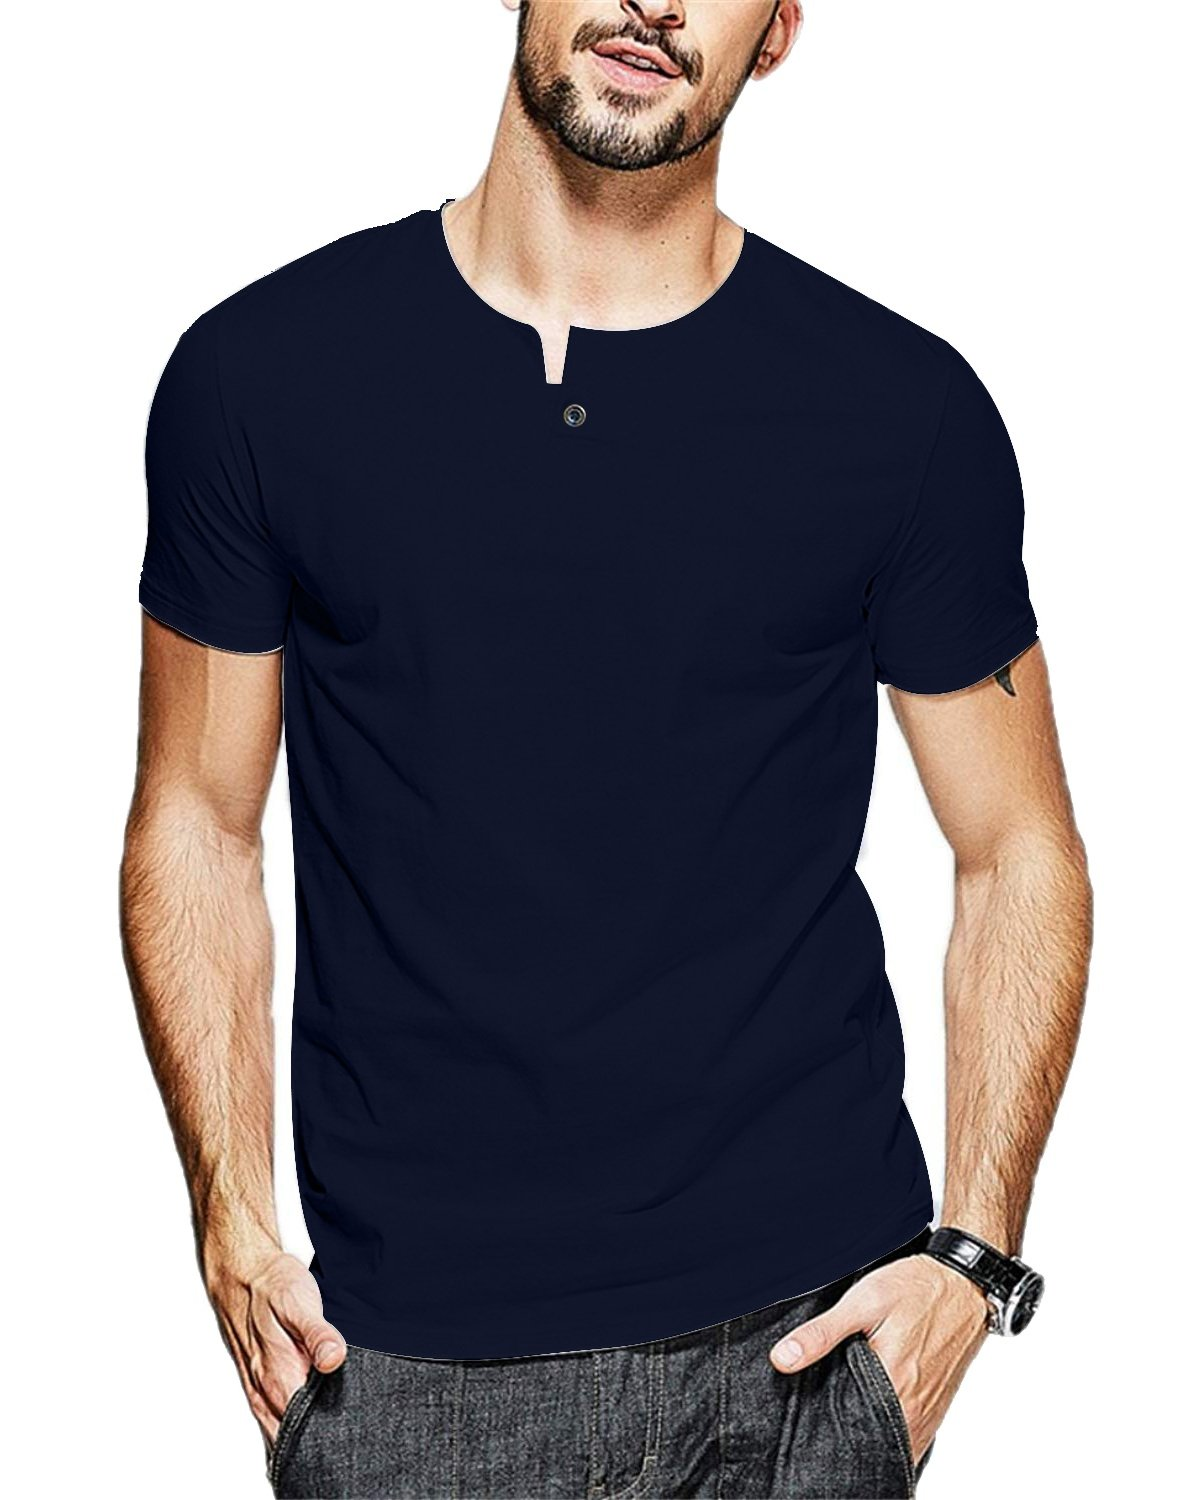 JNC 100% Cotton Mens Summer Casual Button Slim Fit Pure Color Short Sleeve Henley T-Shirts (X-Large, Navy Blue)